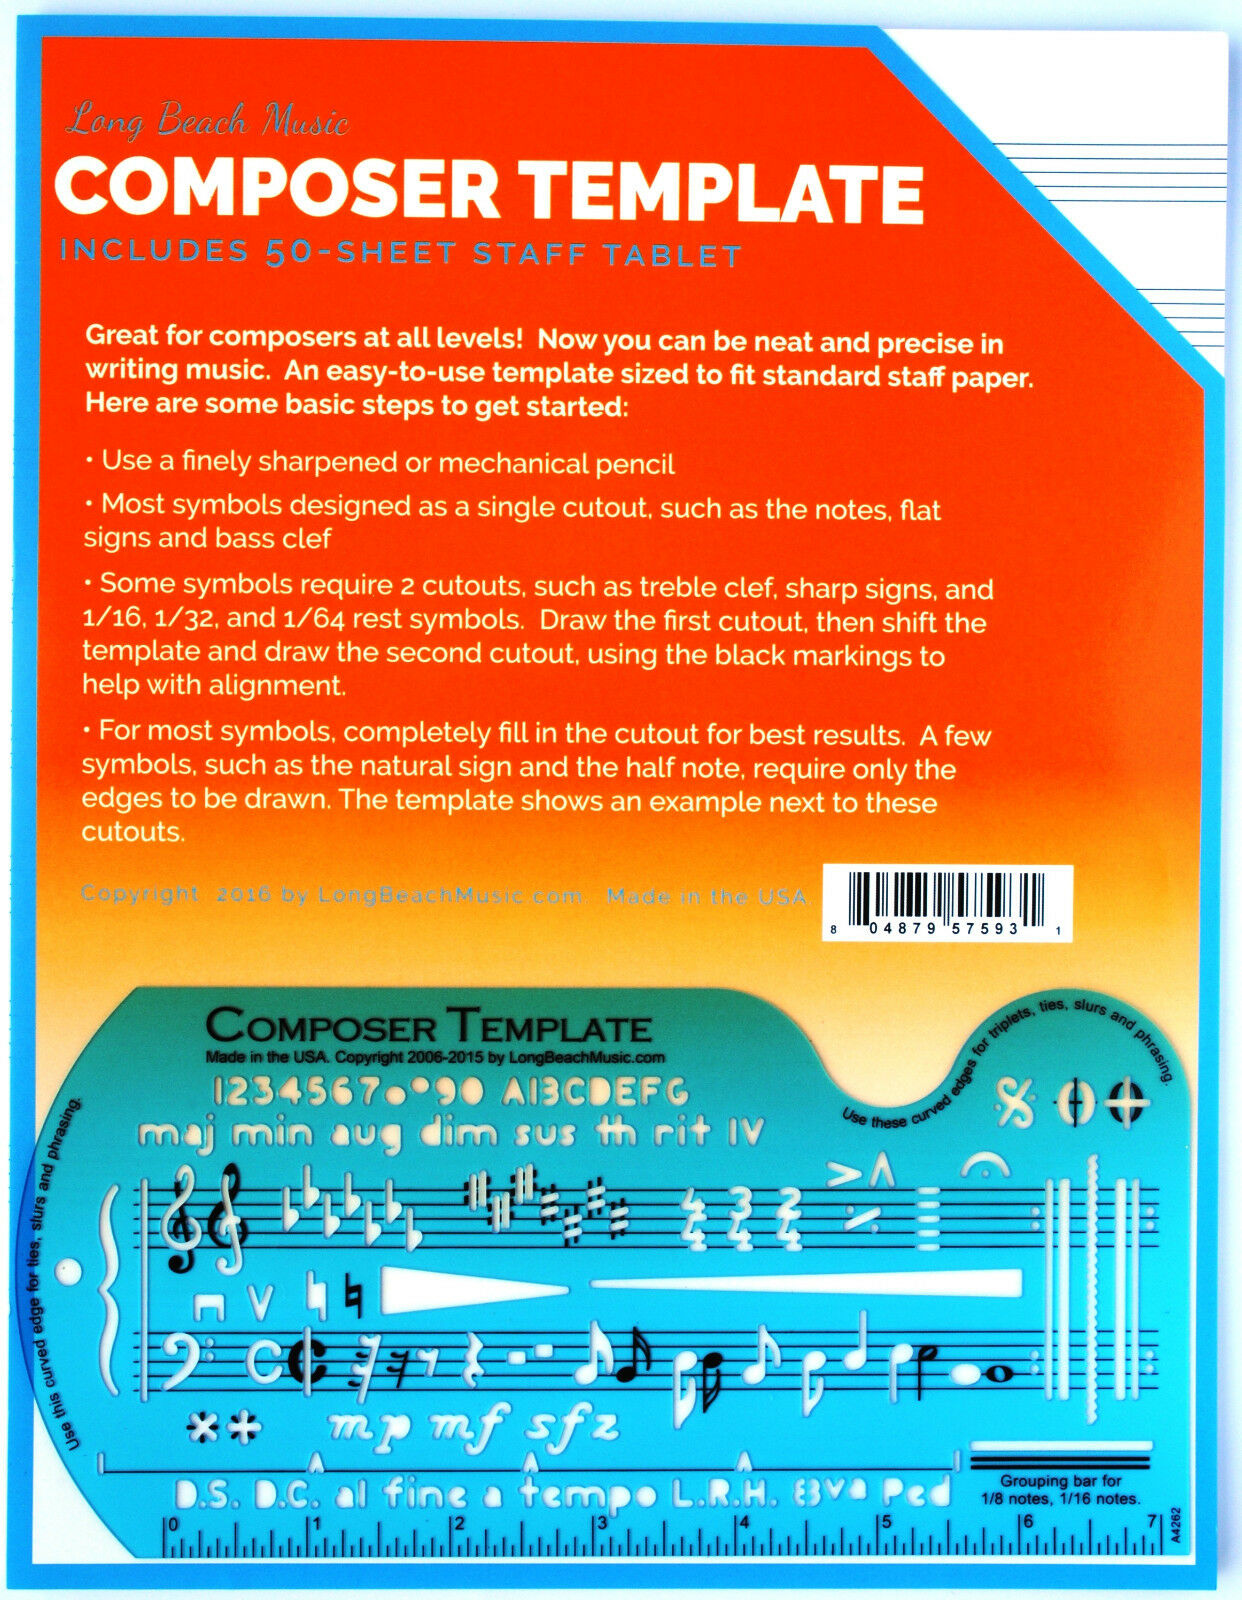 Song Writeru0027s Composing Template For Music Notes U0026 Symbols With Manuscript  Staff | EBay